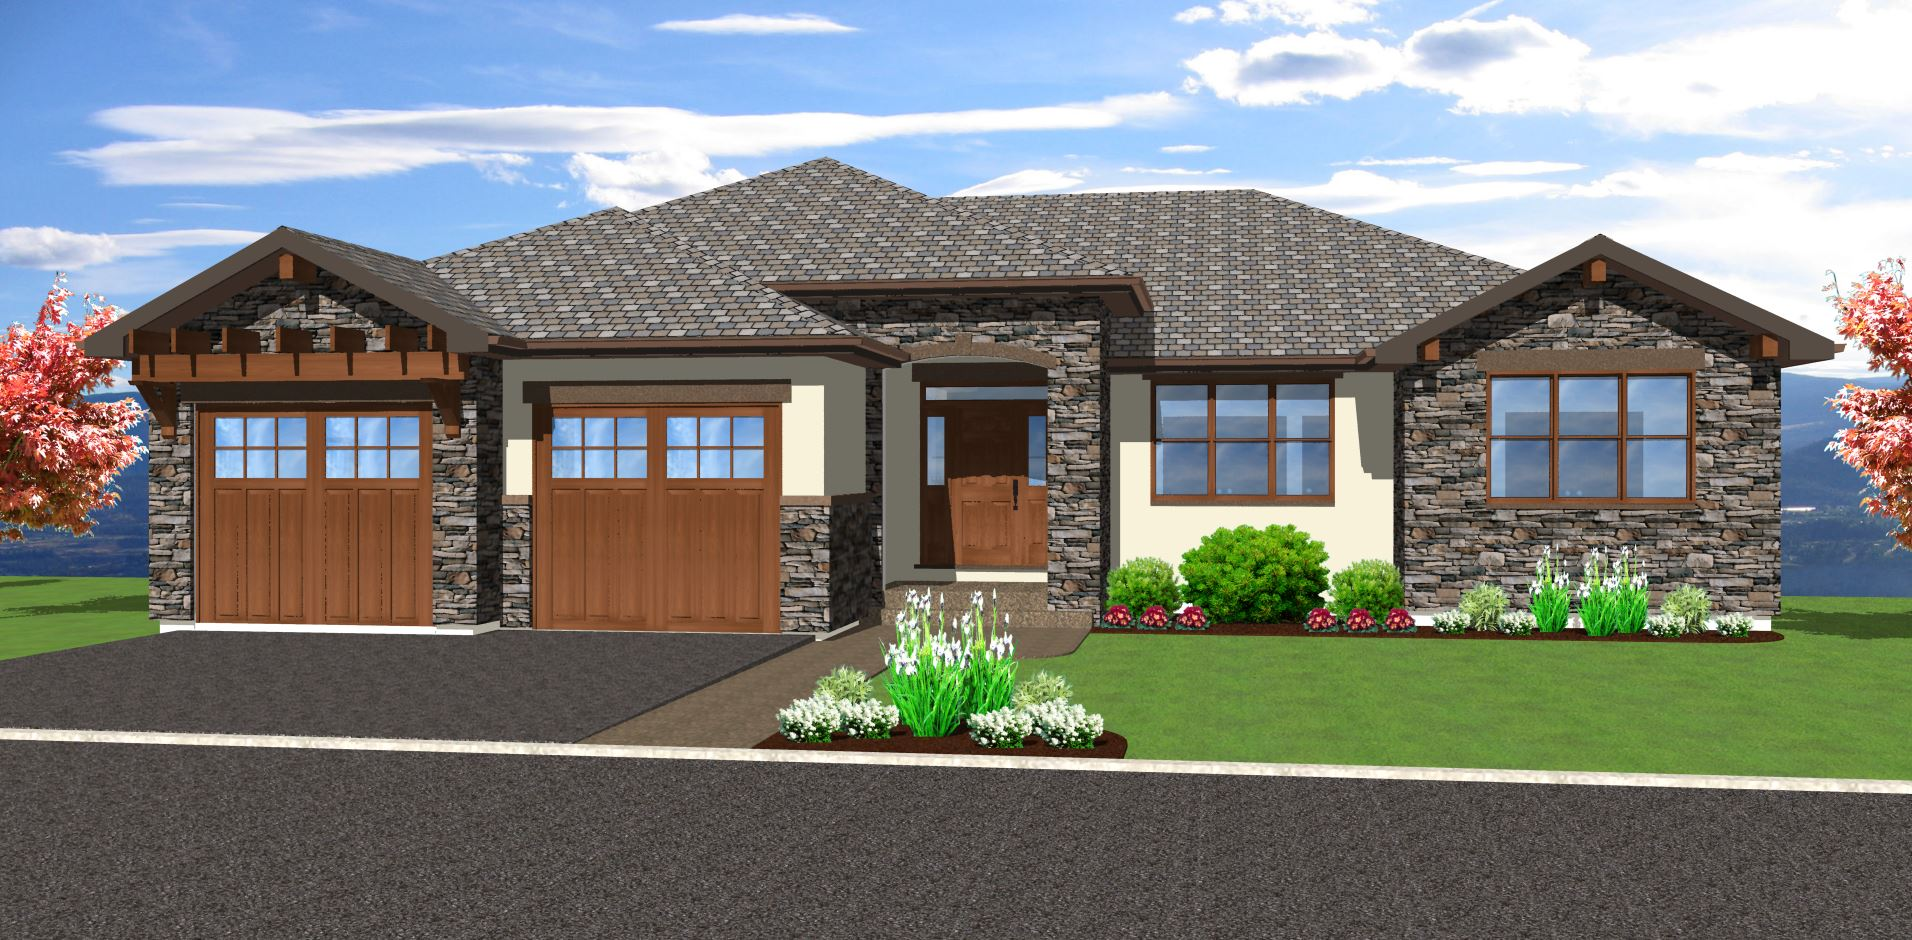 Spacious hillside home with walkout basement 67702mg for Basement home plans designs